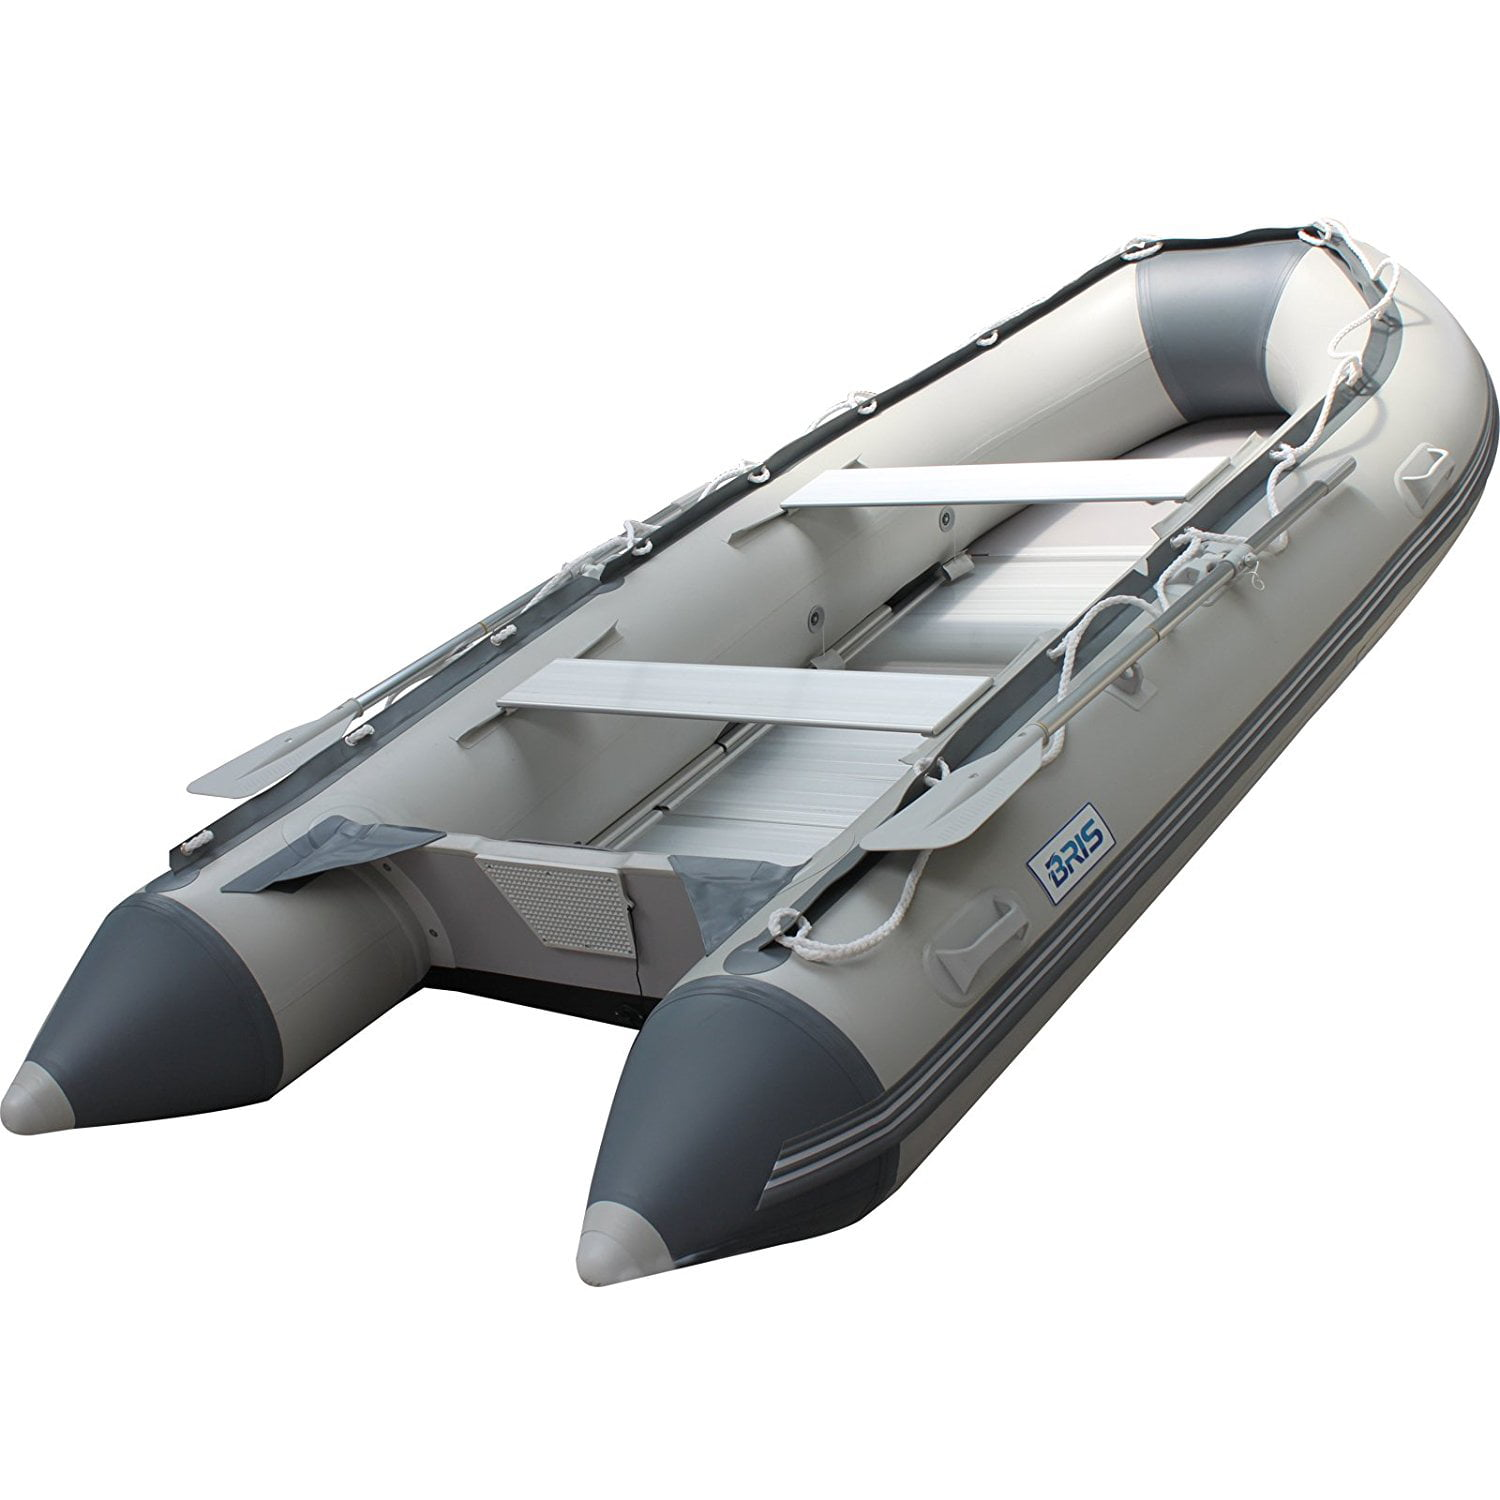 BRIS 10.8Ft Inflatable Boat Inflatable raft Dinghy Fishing Tender Pontoon Boat by BRIS